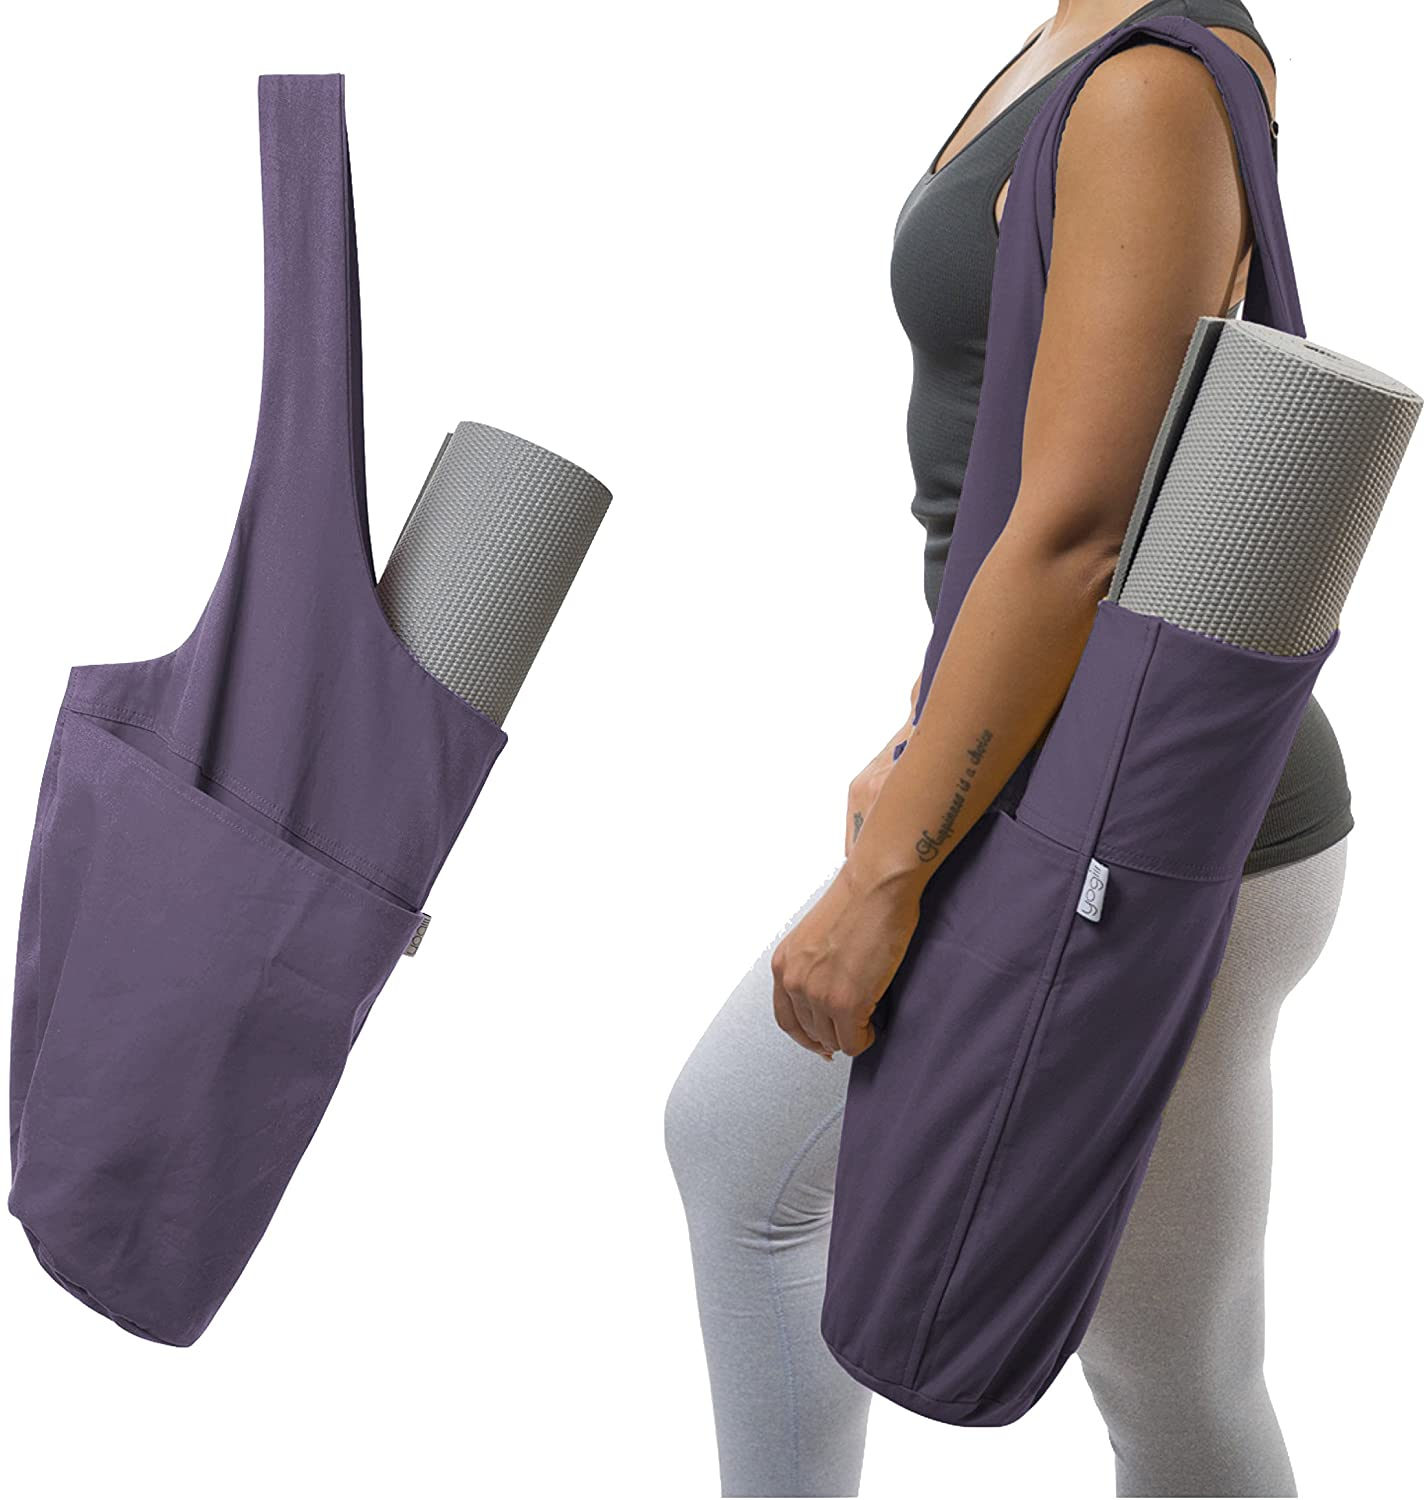 Yogiii Yoga Mat Bag | The Original YogiiiTote | Yoga Mat Tote Sling Carrier with Large Side Pocket & Zipper Pocket | Fits Most Size Mats